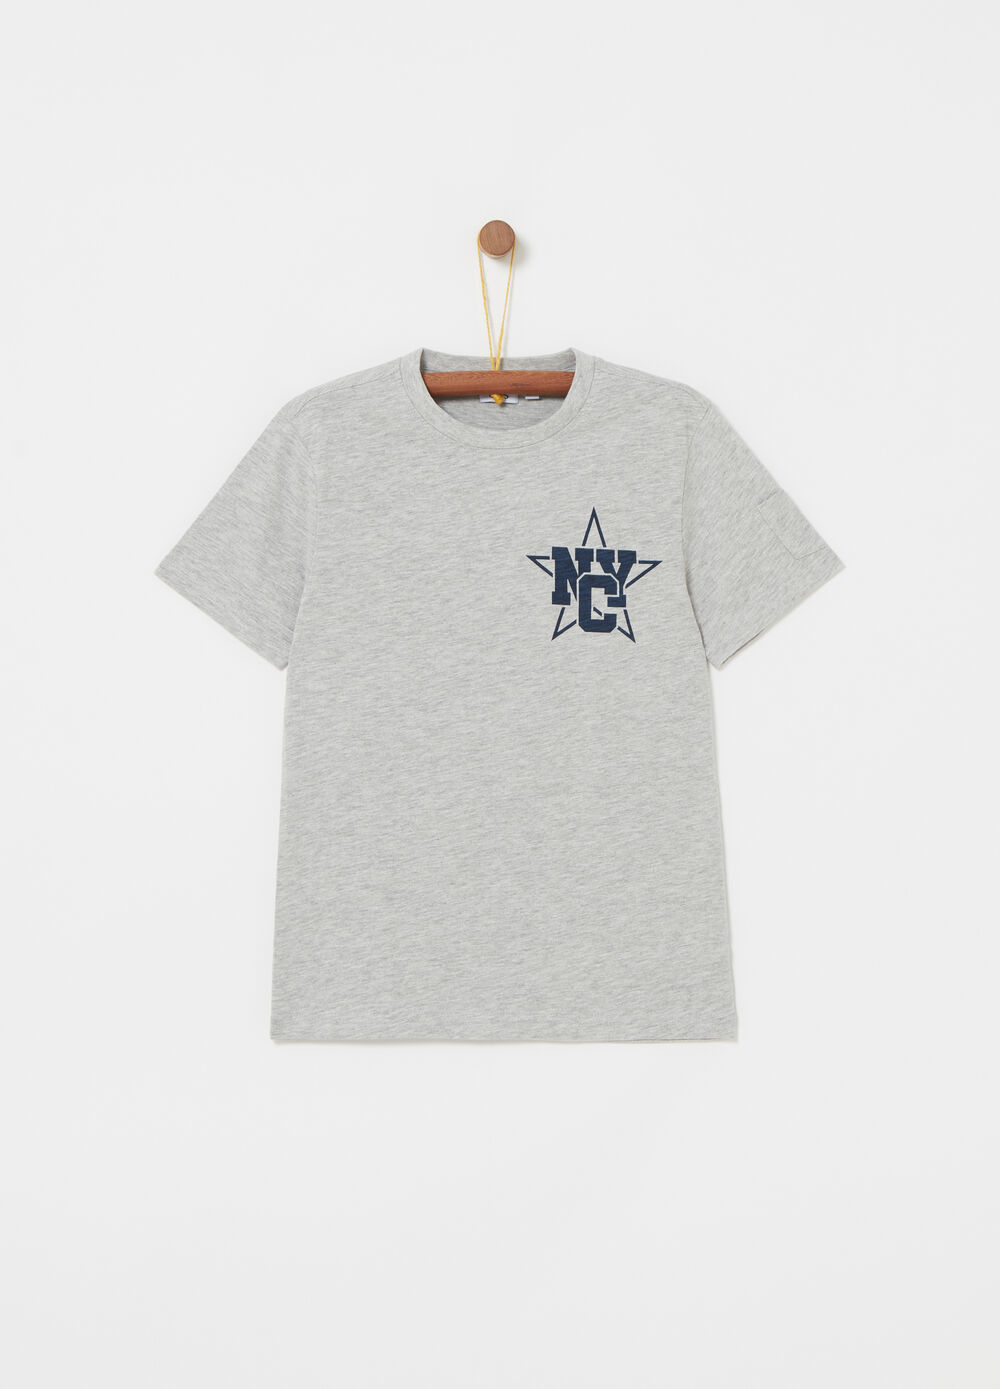 Mélange T-shirt with NYC print